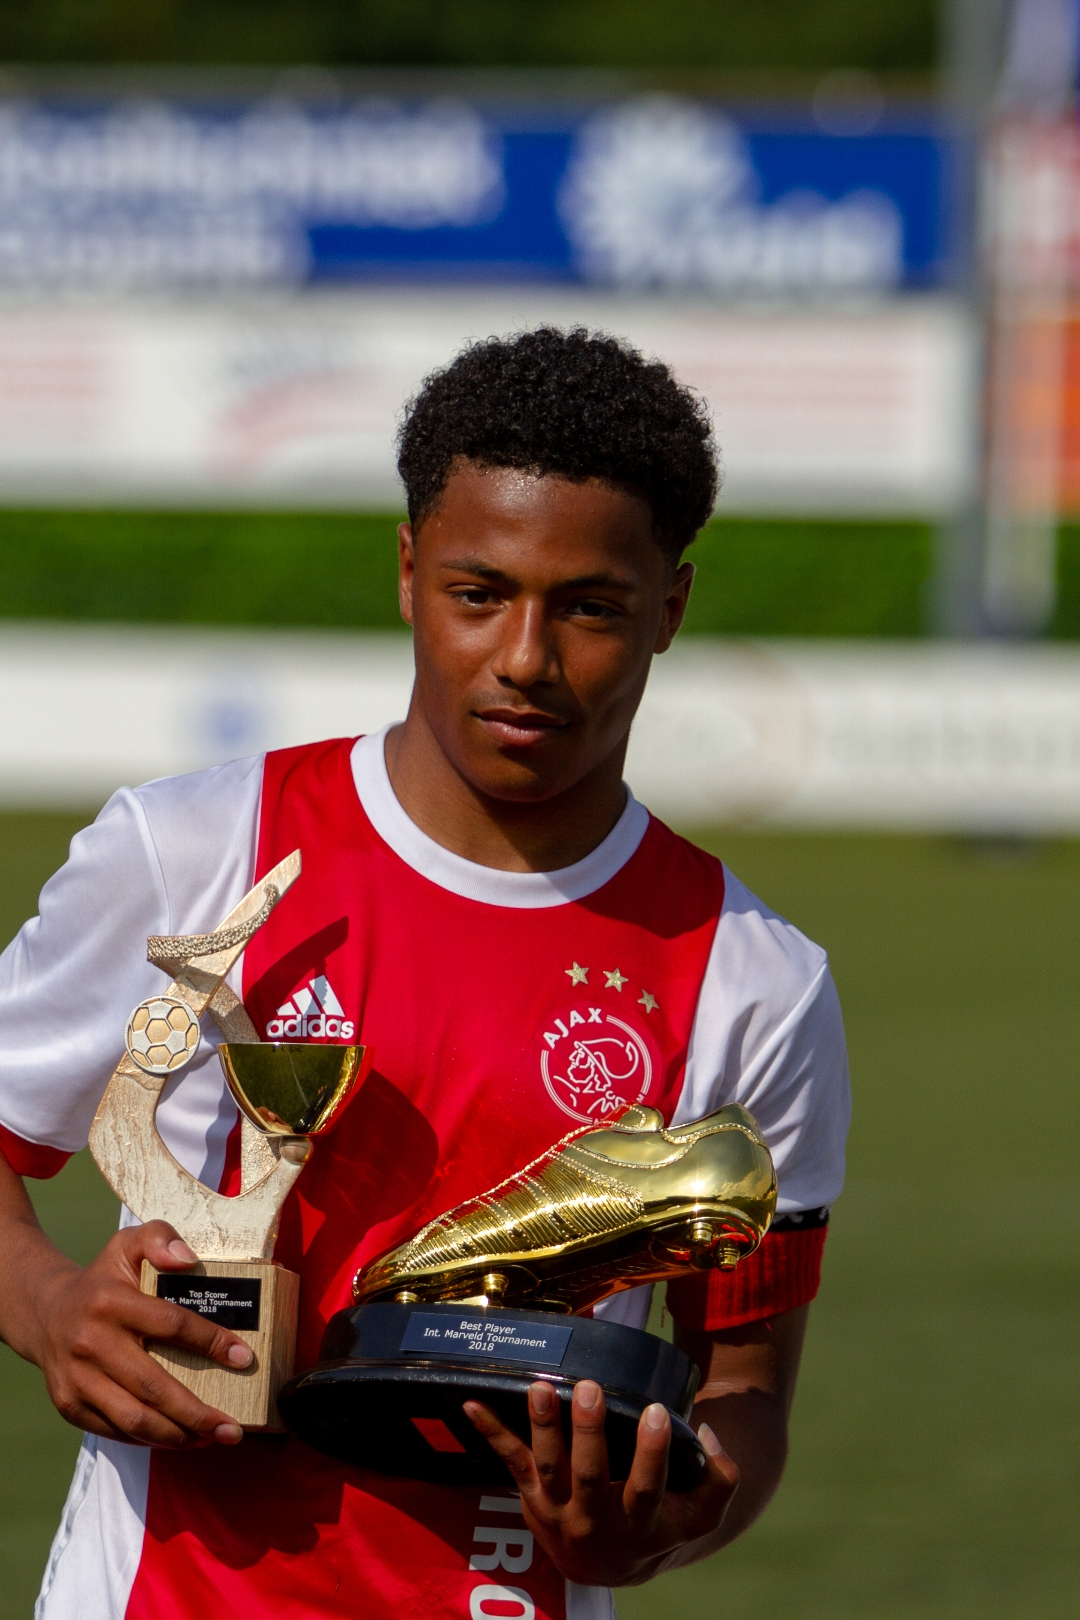 Marveld Tournament 2018 - Best Player And Topscorer Dillon Hoogewerf of Ajax